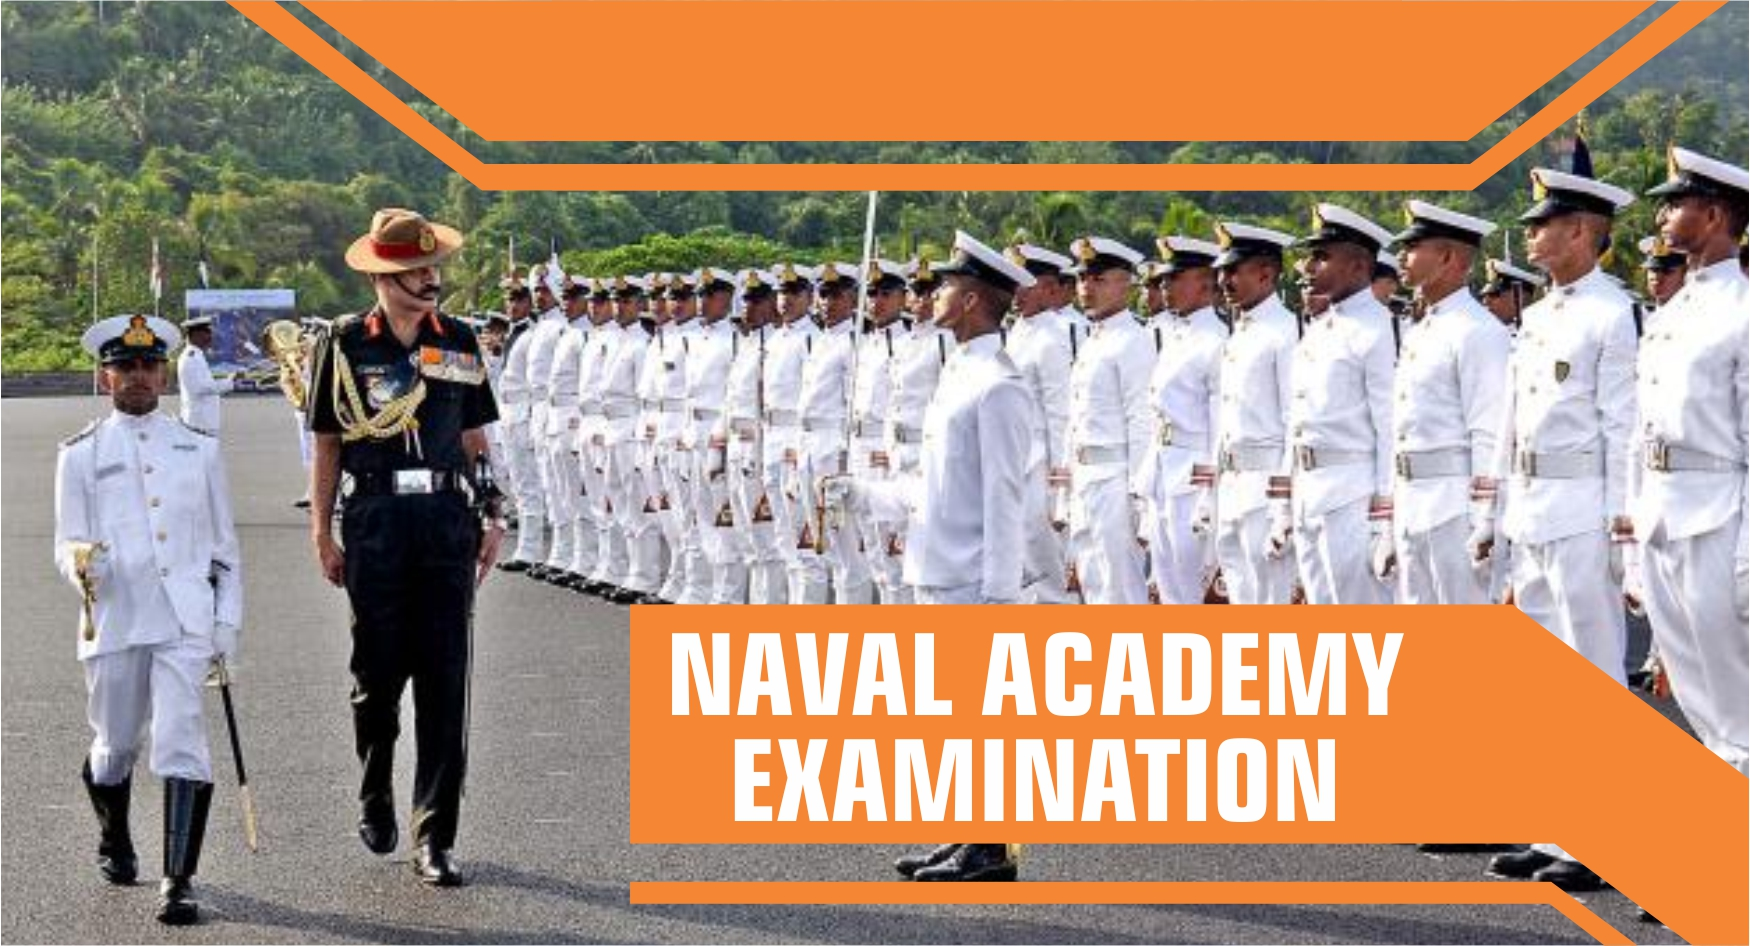 Exams Under UPSC - Naval Academy Examination